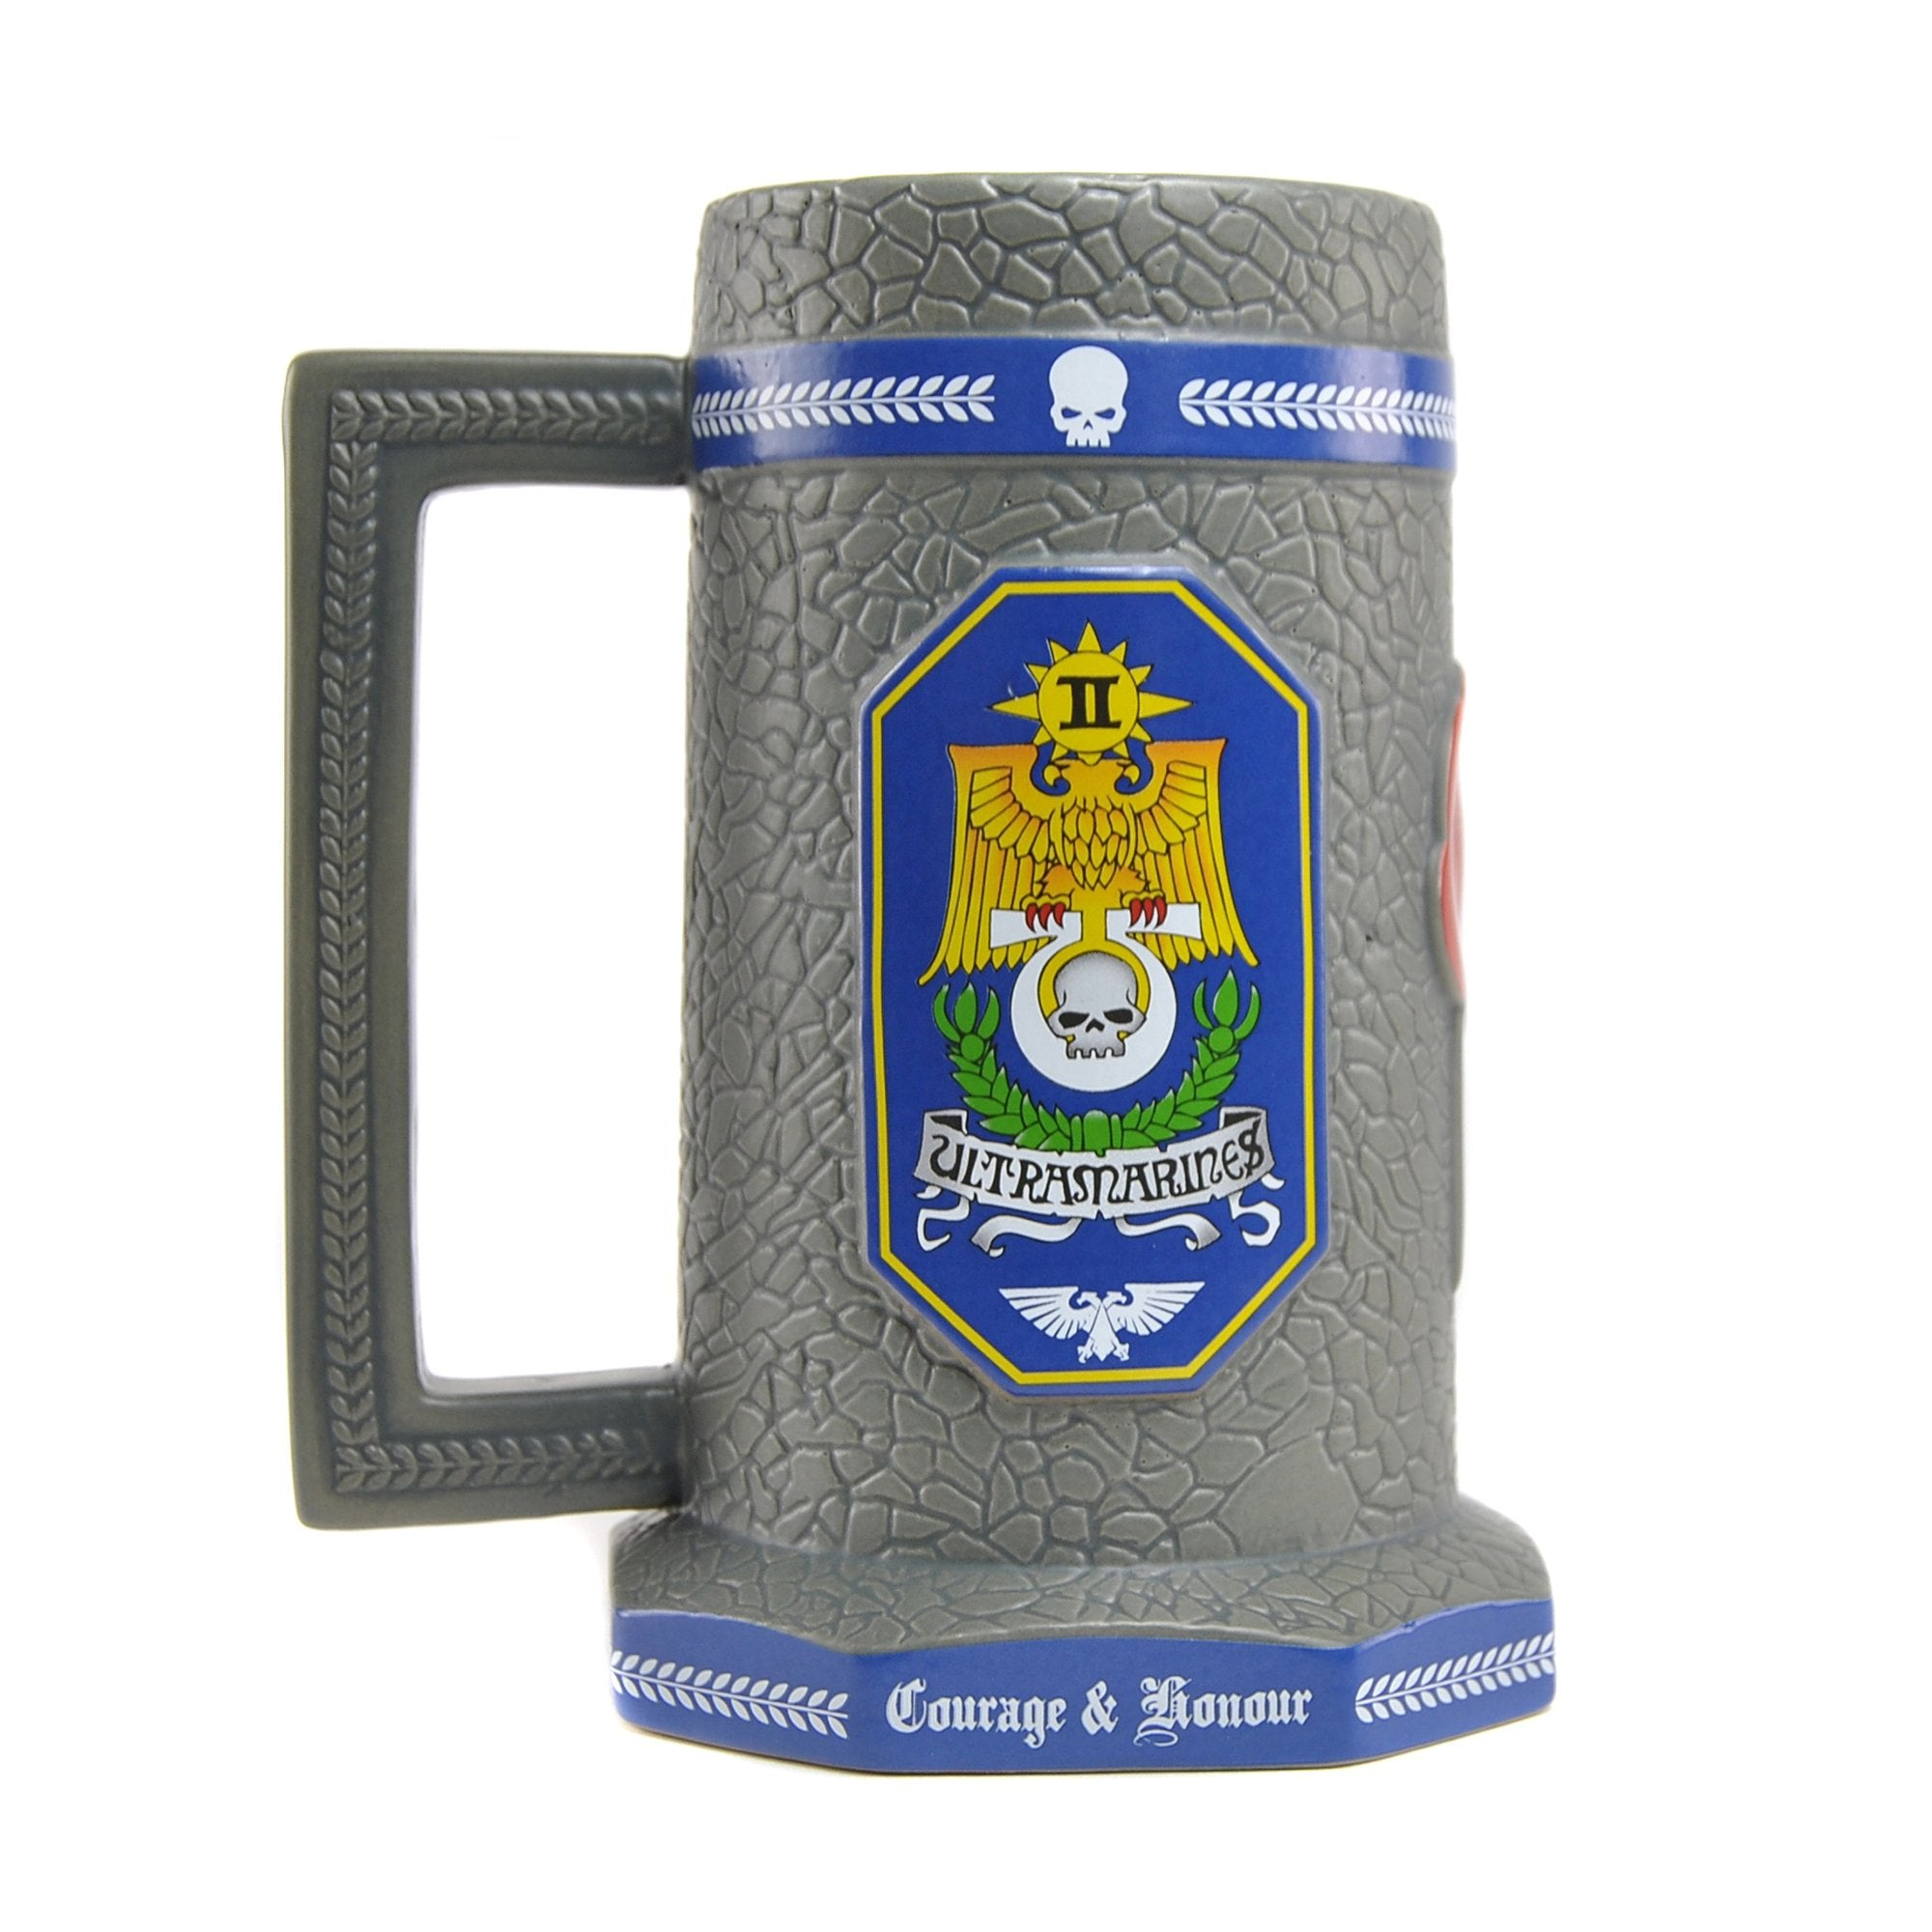 Warhammer 40,000 Stein Mug - Ultramarines - Half Moon Bay US